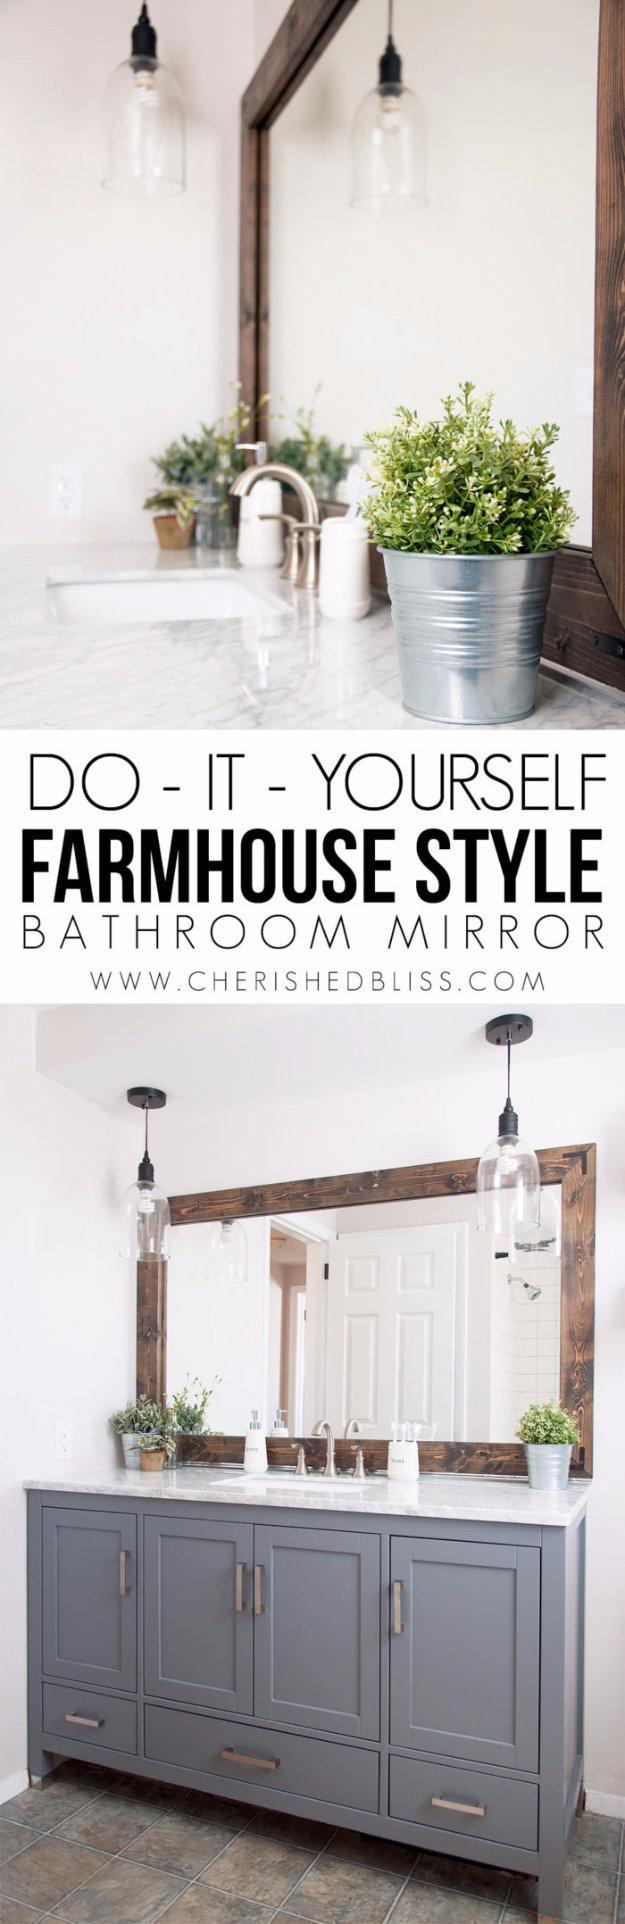 DIY Farmhouse Style Decor Ideas - Farmhouse Bathroom Mirror Tutorial - Creative Rustic Ideas for Cool Furniture, Paint Colors, Farm House Decoration for Living Room, Kitchen and Bedroom #diy #diydecor #farmhouse #countrycrafts